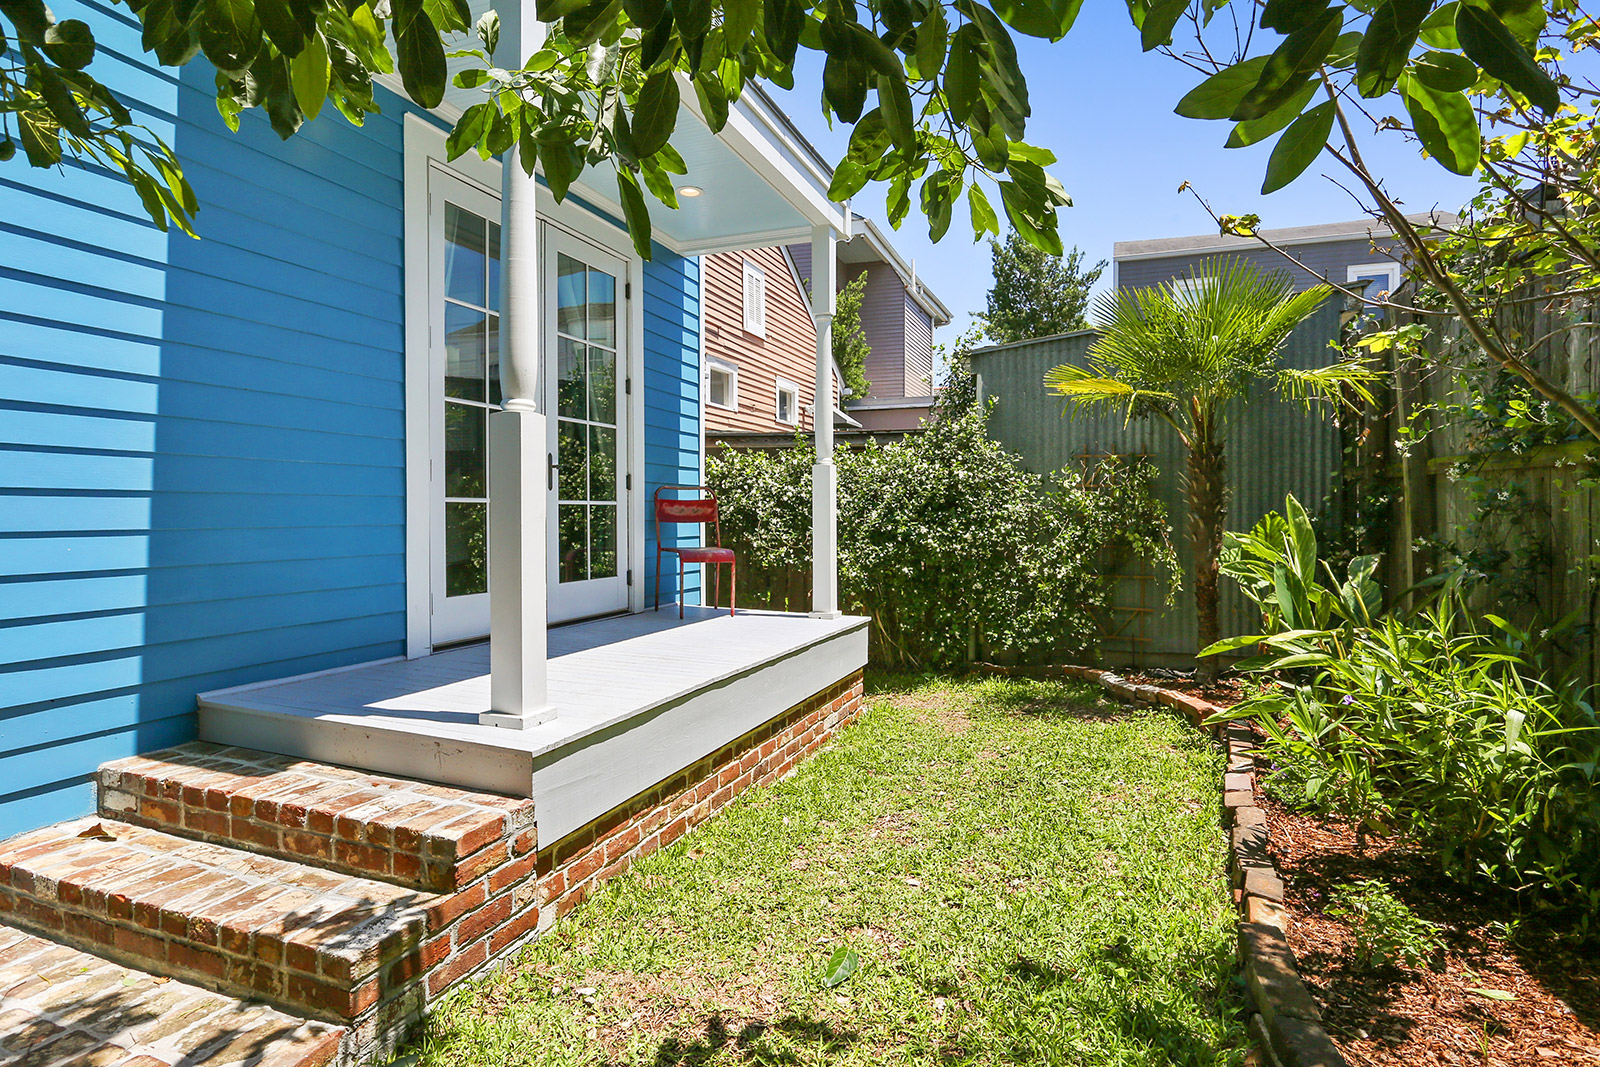 465K Buys This Gorgeous East Riverside Cottage